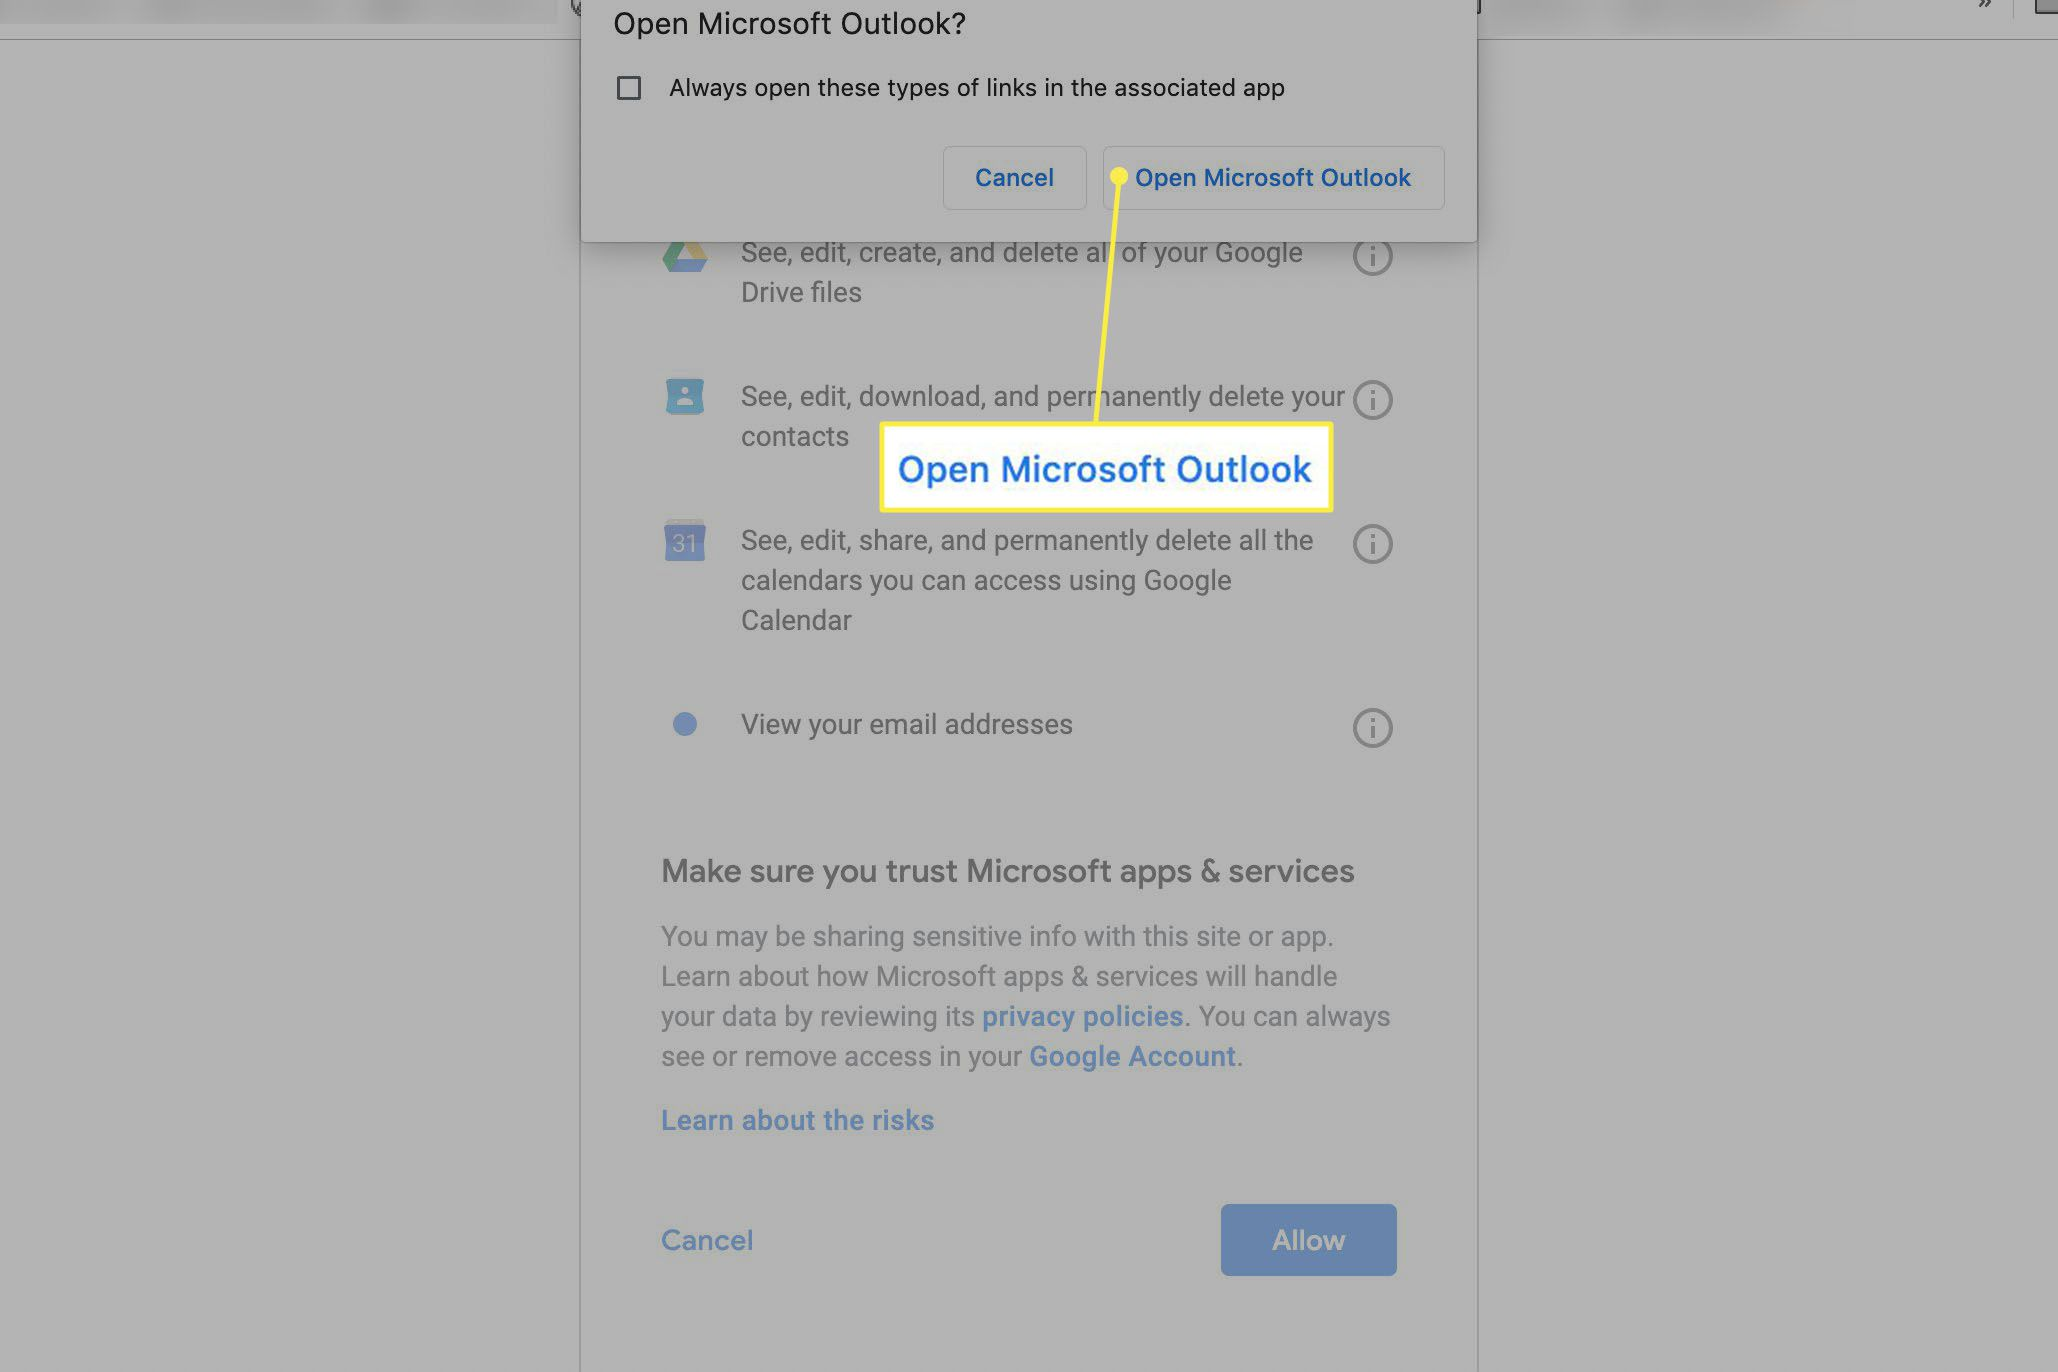 Open Microsoft Outlook to complete the account addition process